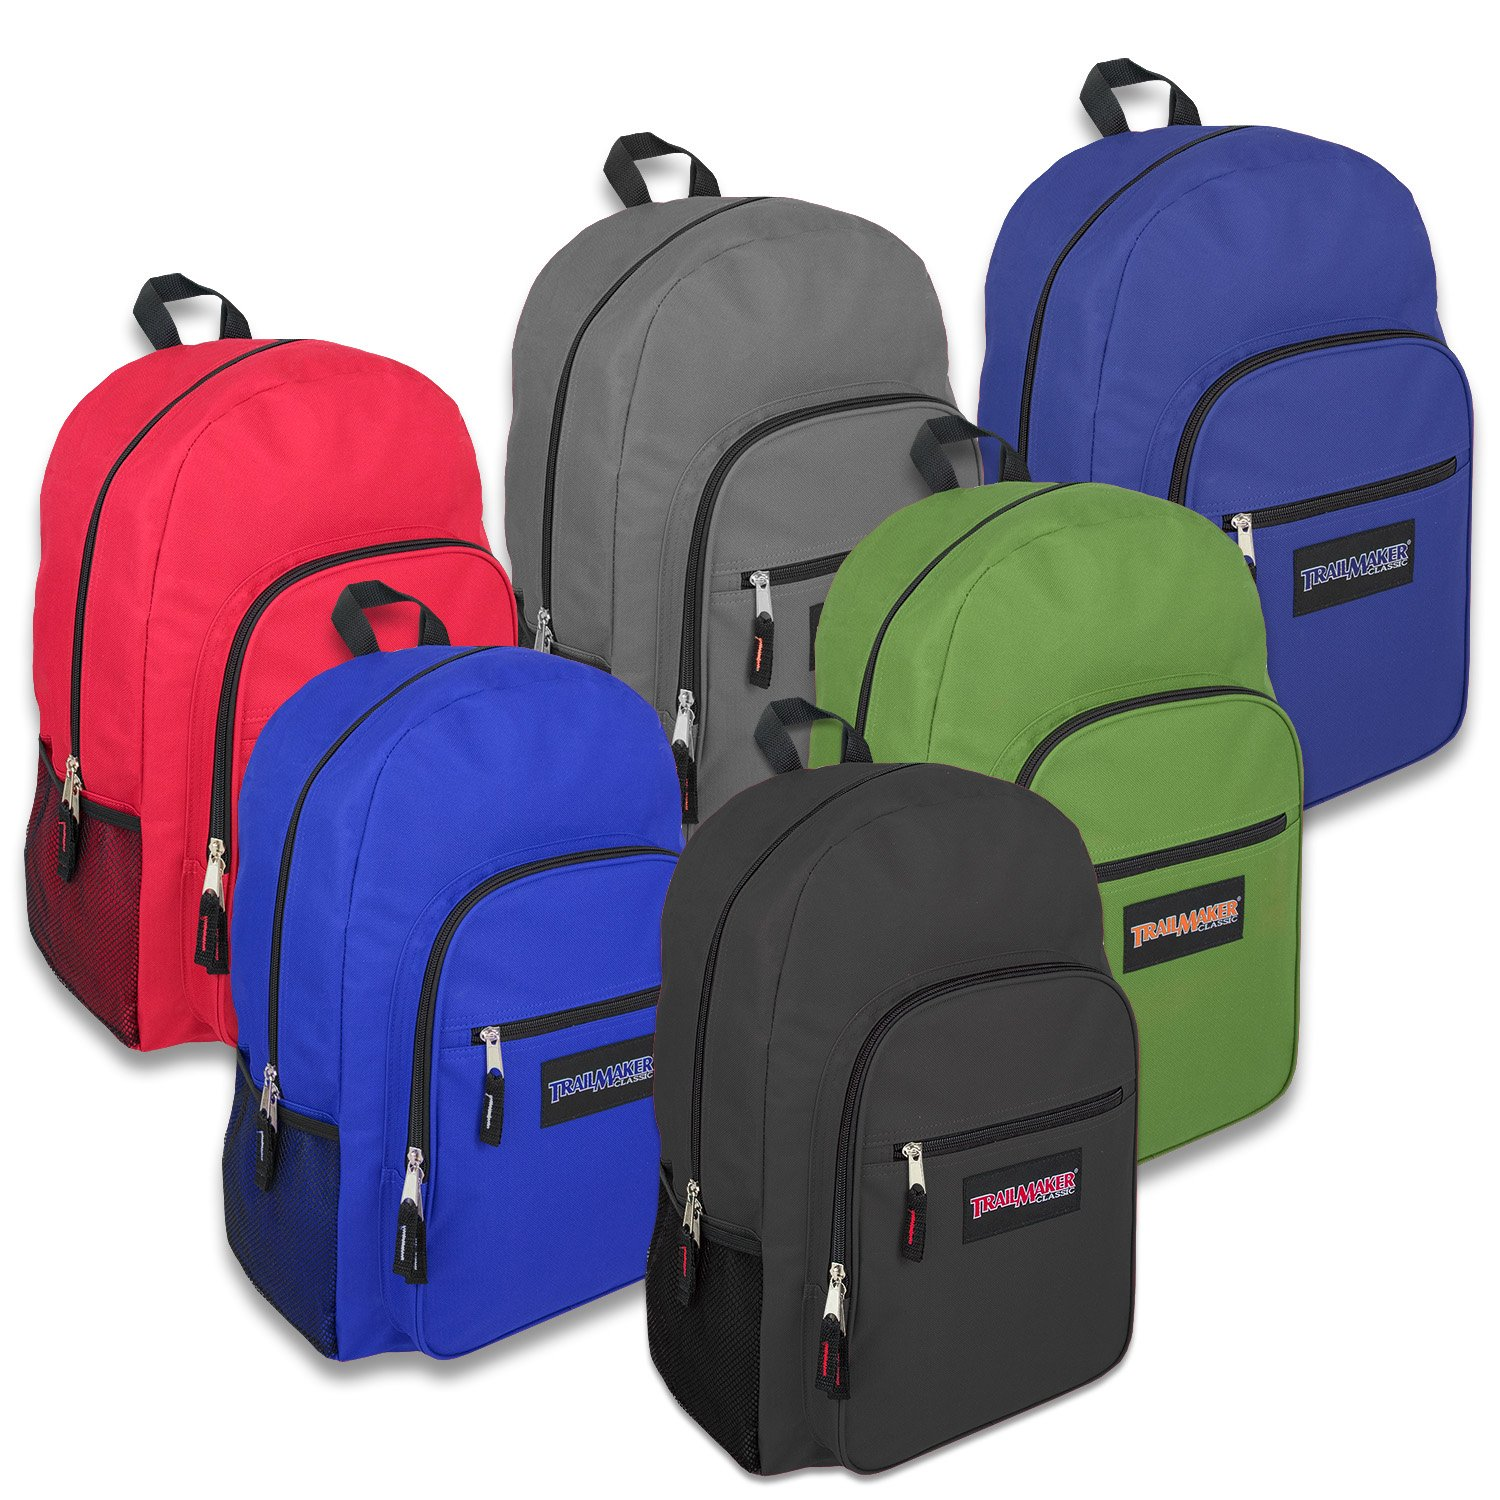 High Trails Deluxe 19 Inch Backpack - 6 colors (Pack Of 24)